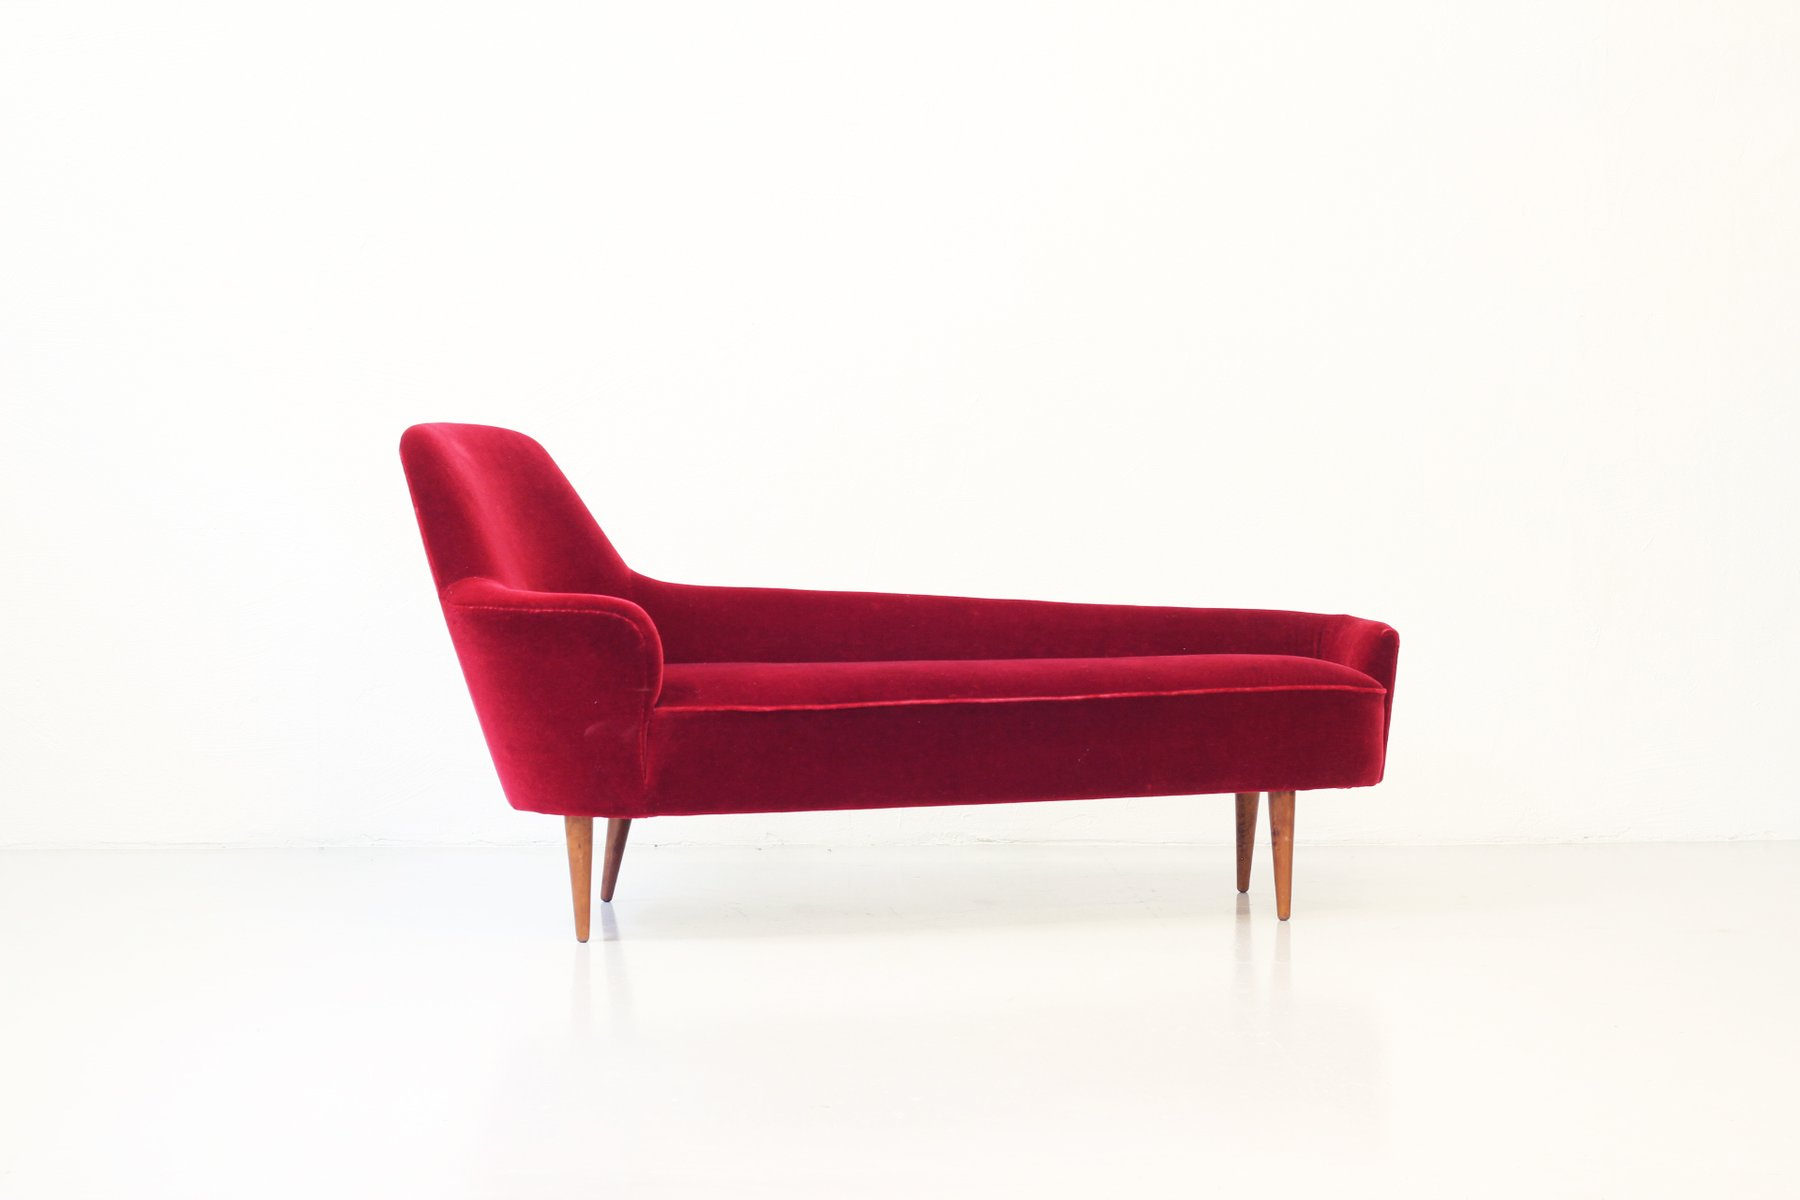 Singoalla chaise lounge by gillis lundgren for ikea 1961 for Chaise for sale